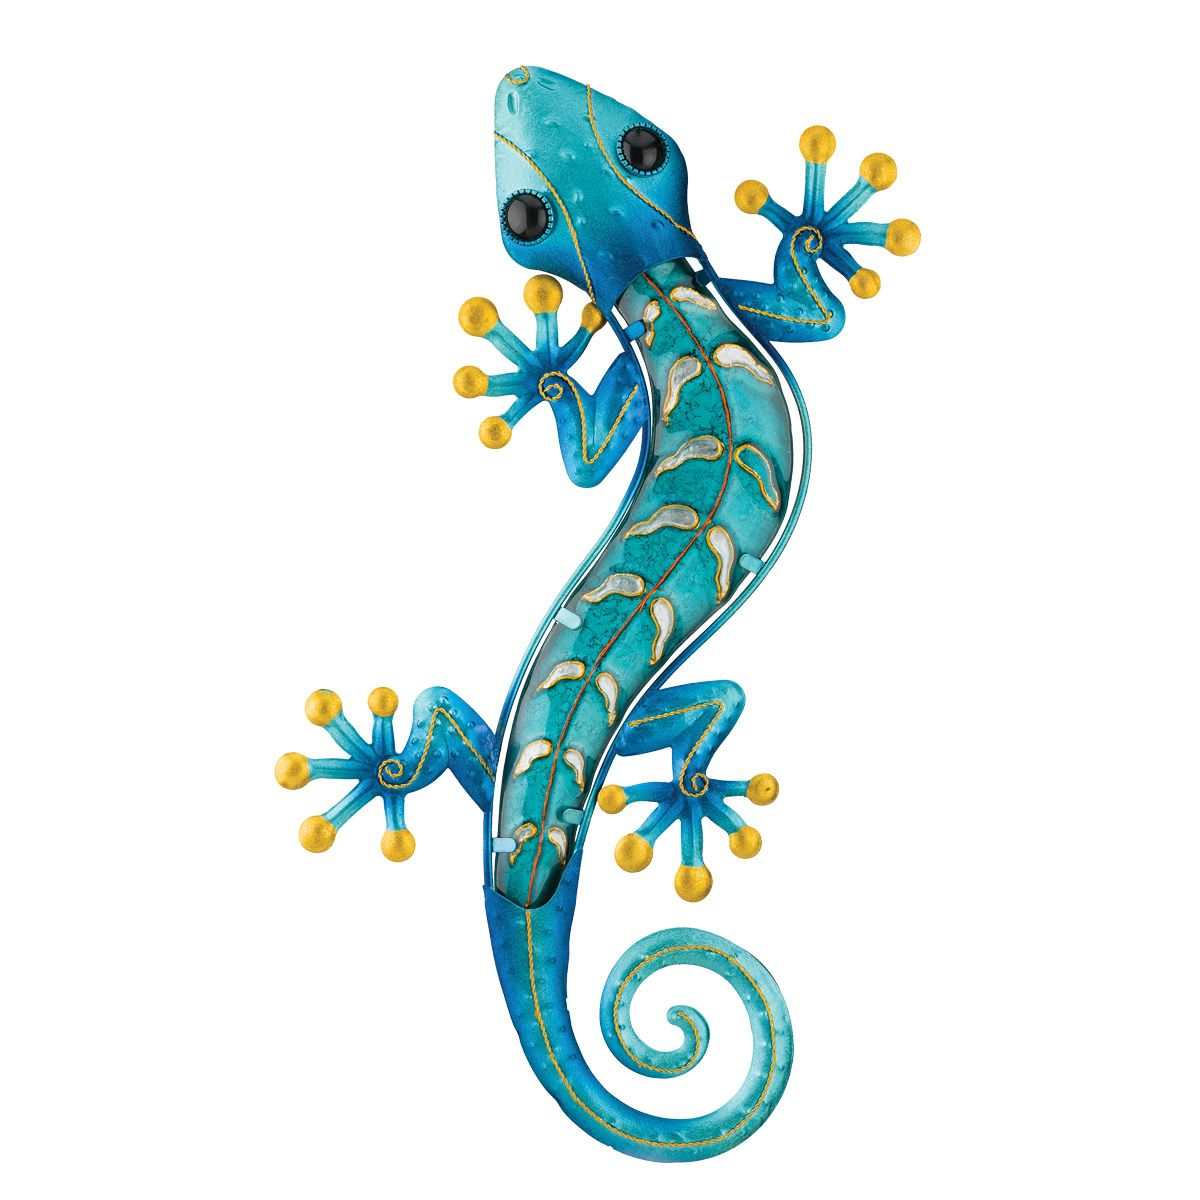 Rustic Metal Wall Art: Metal Gecko Wall Art – Blue Intended For Widely Used Gecko Wall Decor (View 17 of 20)